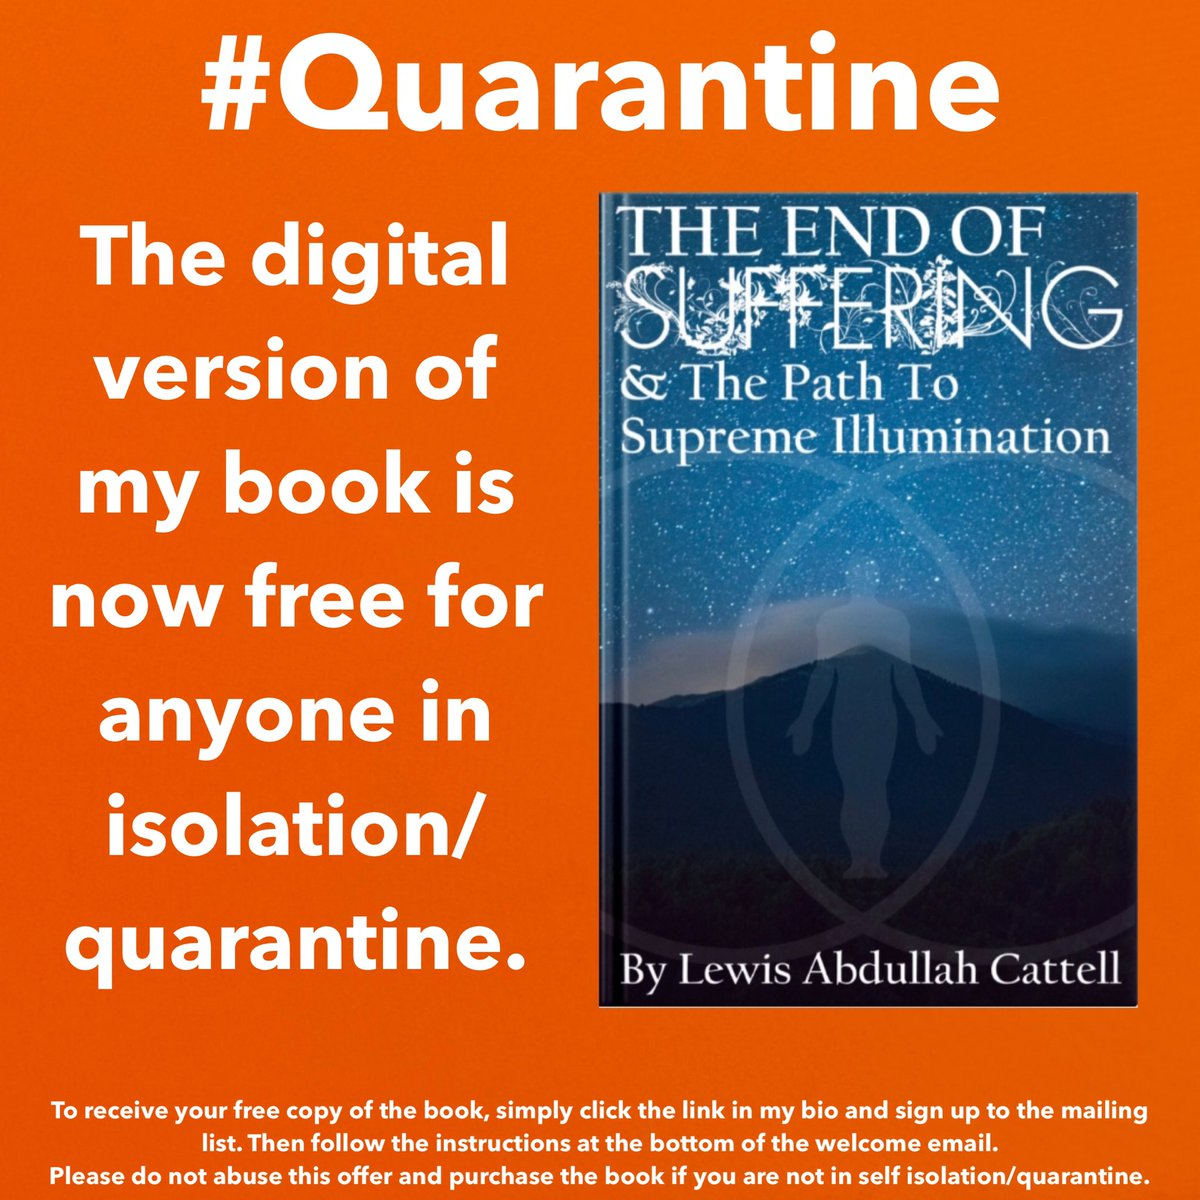 @KristinLisaCar1 You can read my book for free if you are in quarantine (link in bio)